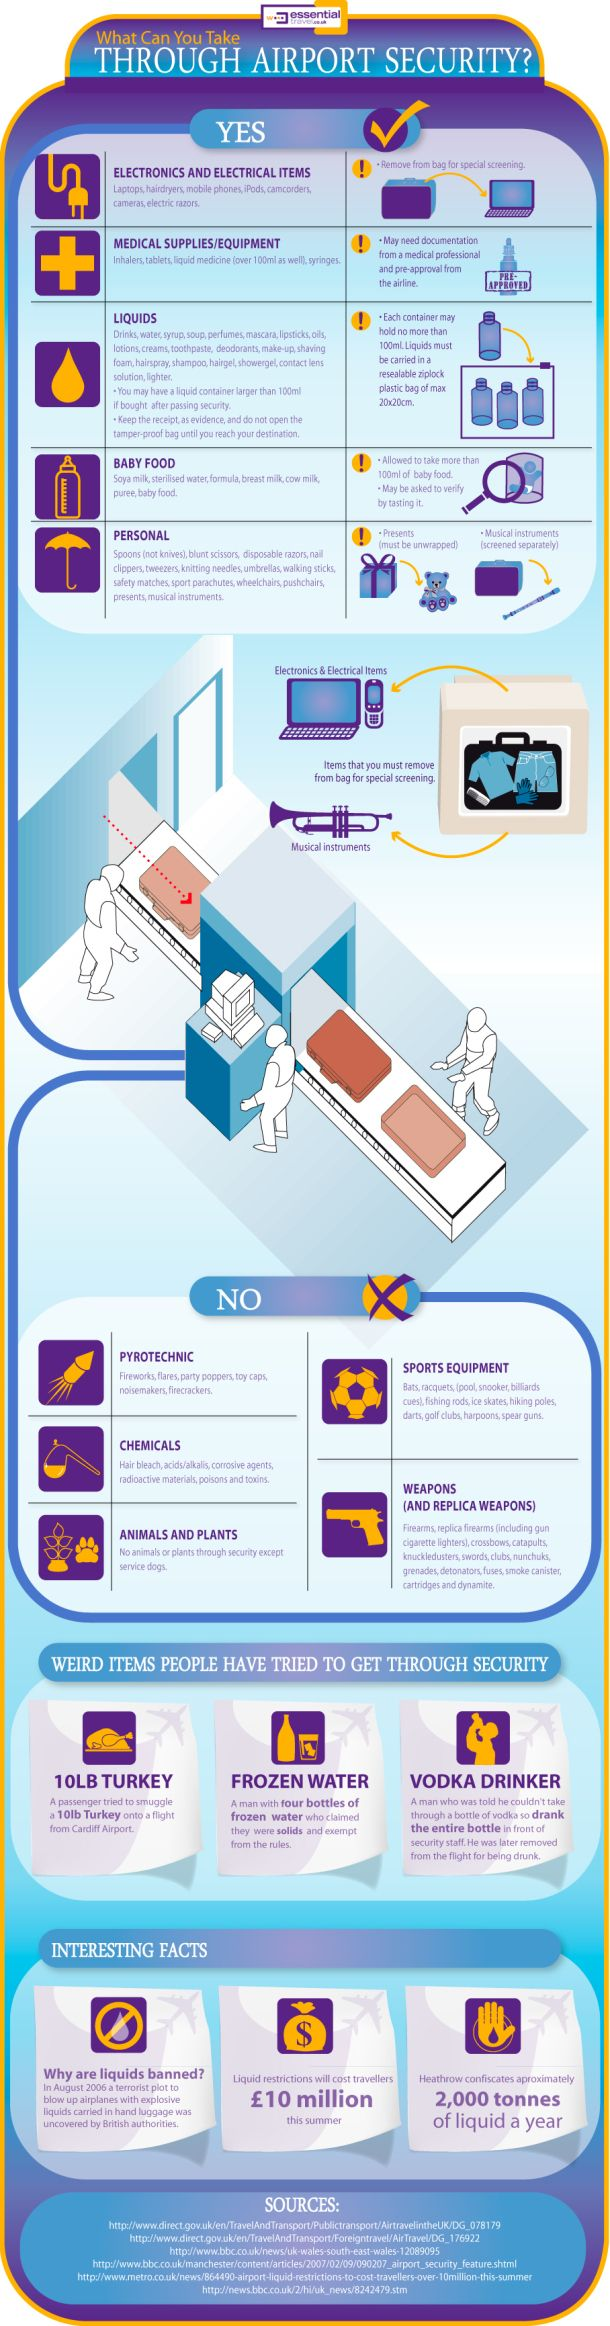 What Can You Take Through Airport Security? [INFOGRAPHIC] #airport #security